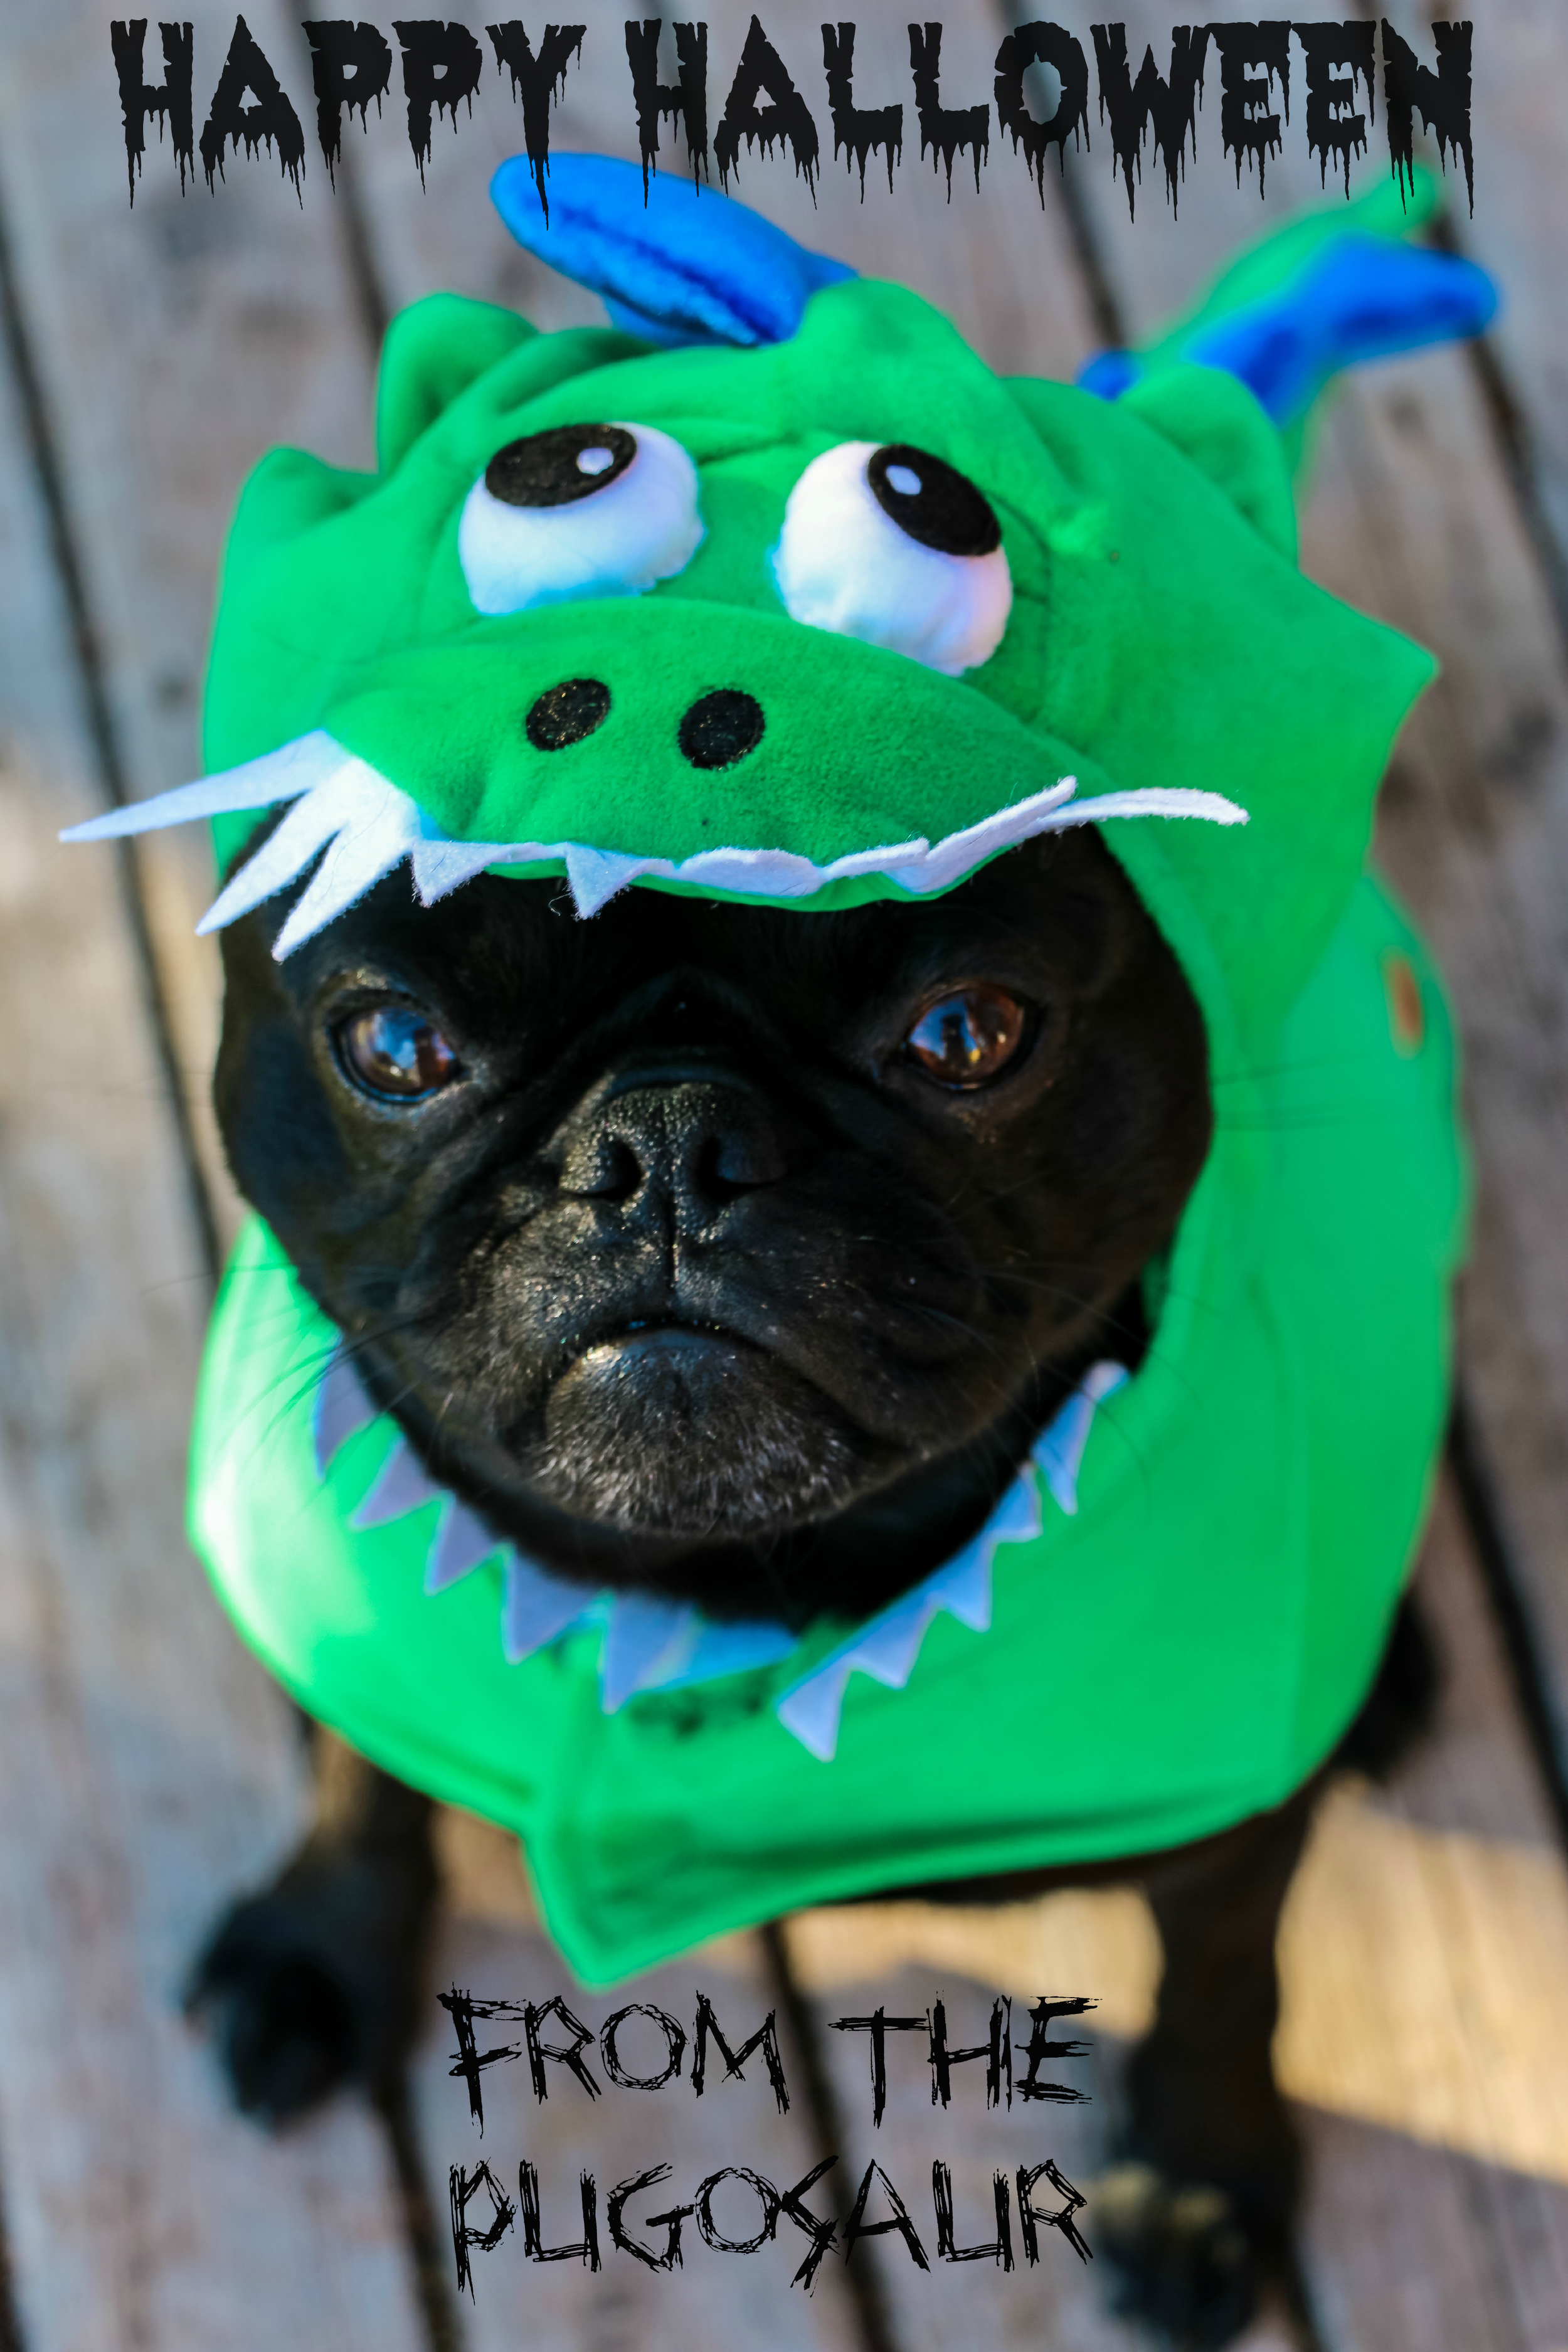 isn't he the cutest happiest looking pug EVER?!?